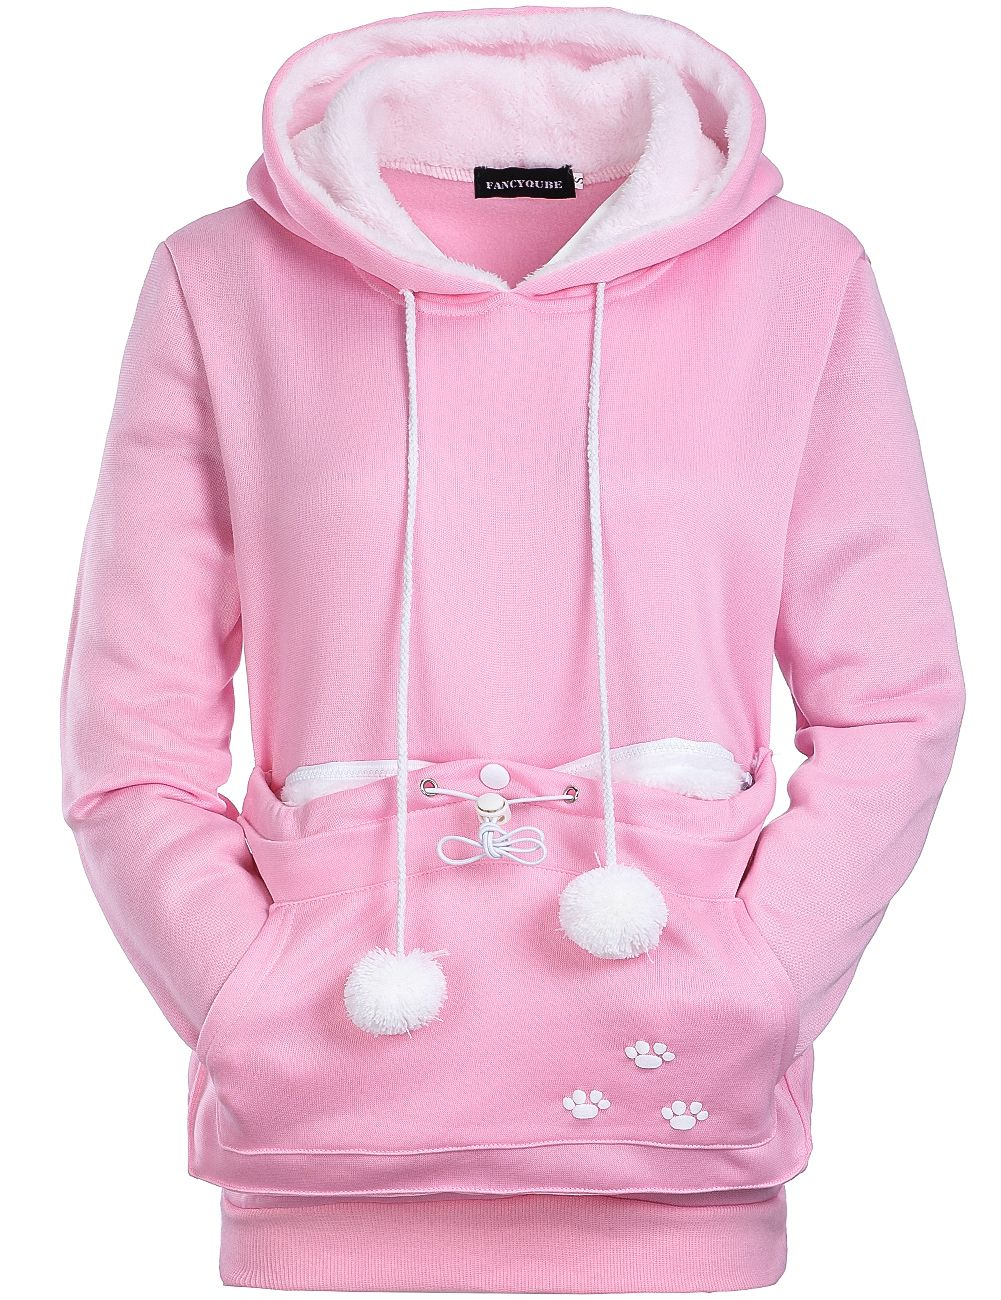 Dog Pet Hoodies Tops Cat Lovers Hoodies With Cuddle Pouch For Casual Kangaroo Pullovers With Ears Sweatshirt XL Drop Shipping